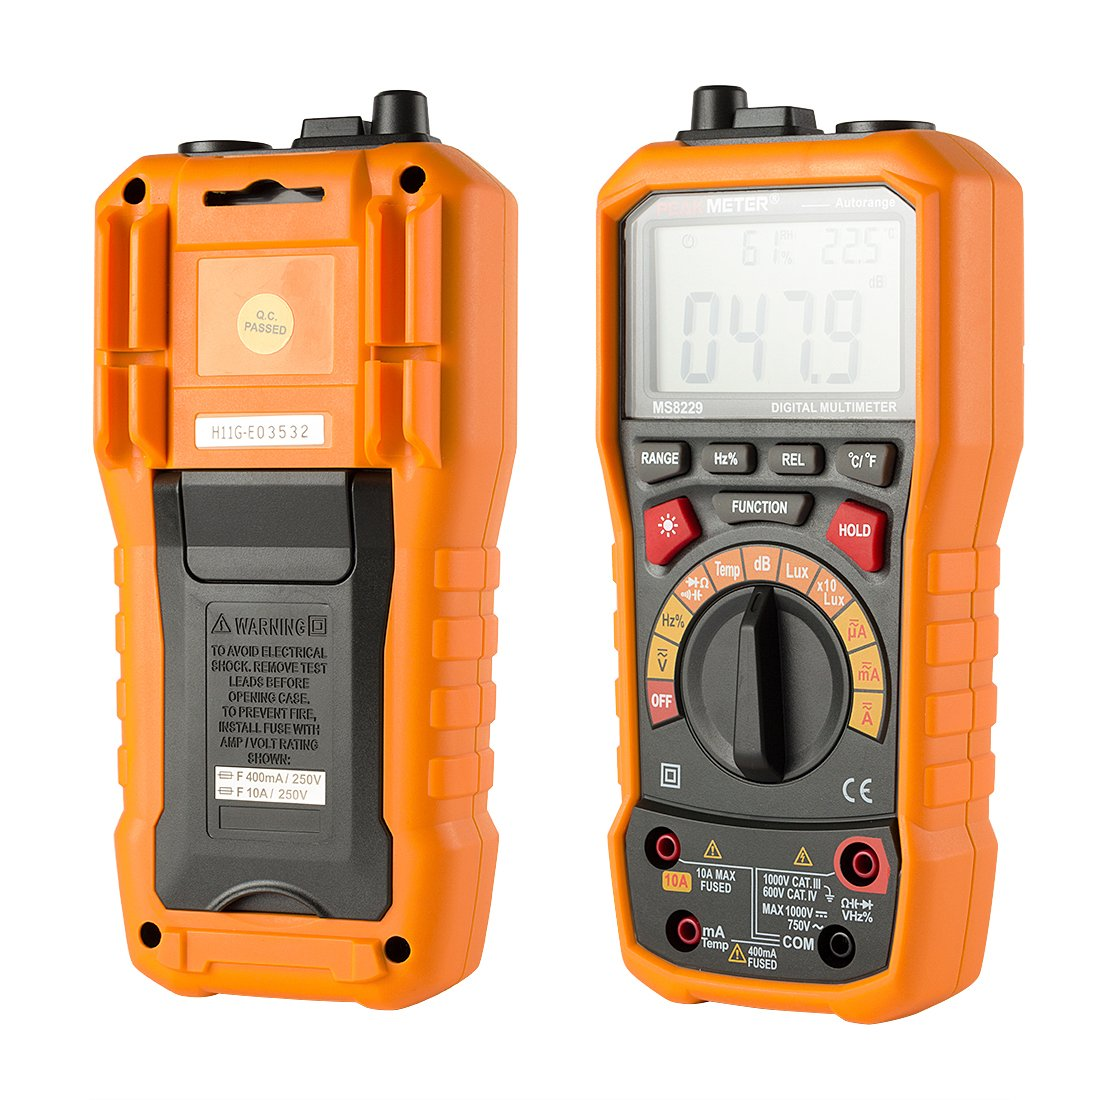 uxcell PEAKMETER Authorized Orange MS8229 Multifunction LCD Backlight Digital Multimeter Testing DC AC Voltage Current Ohm Frequency Lux Temp Humidity Meter ...